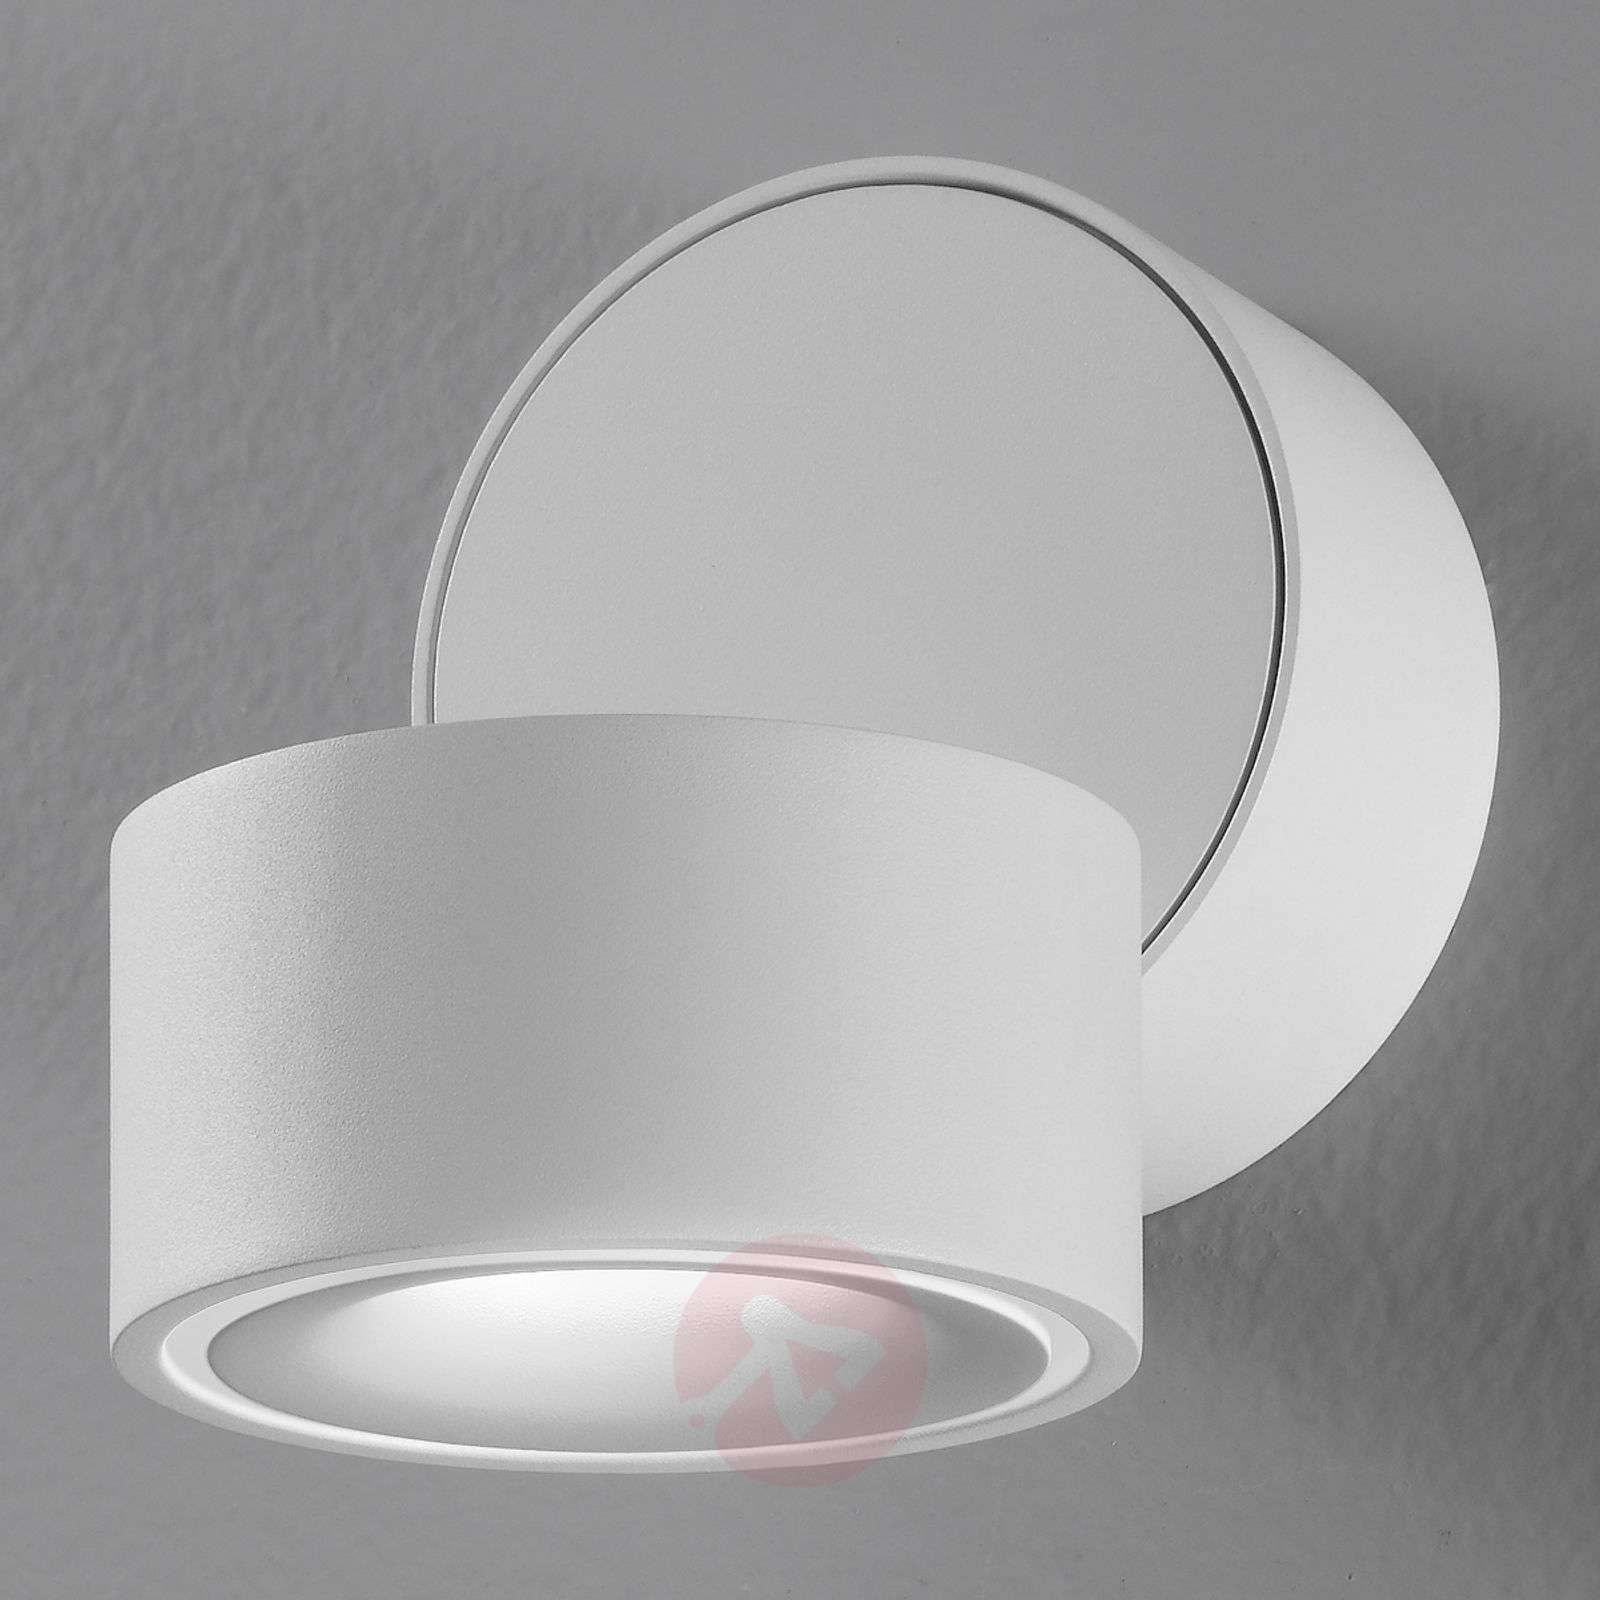 Spot pour plafond LED Clippo pivotant and inclinable-3023101-01